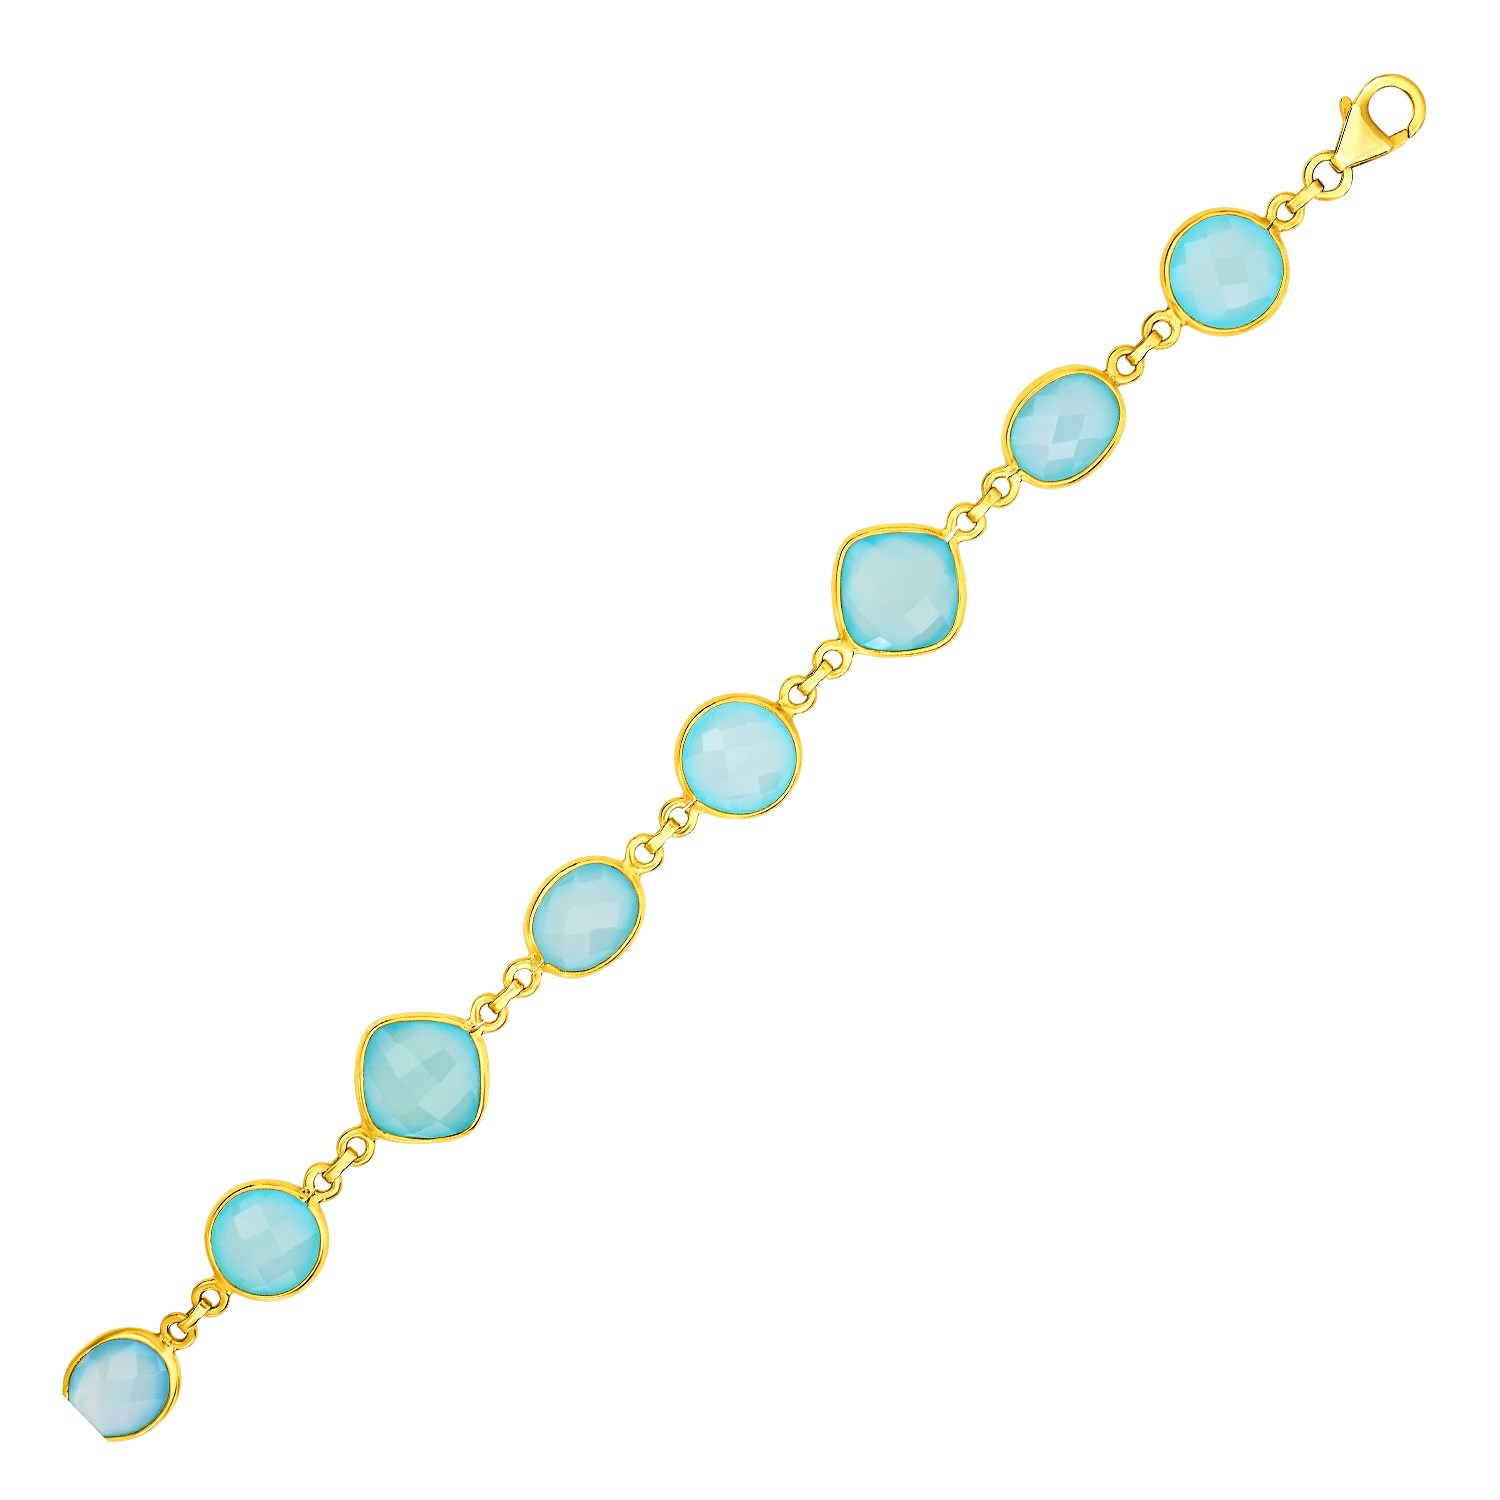 Bracelet with Aqua Chalcedony Links with Yellow Finish in Sterling Silver by Diamond2Deal